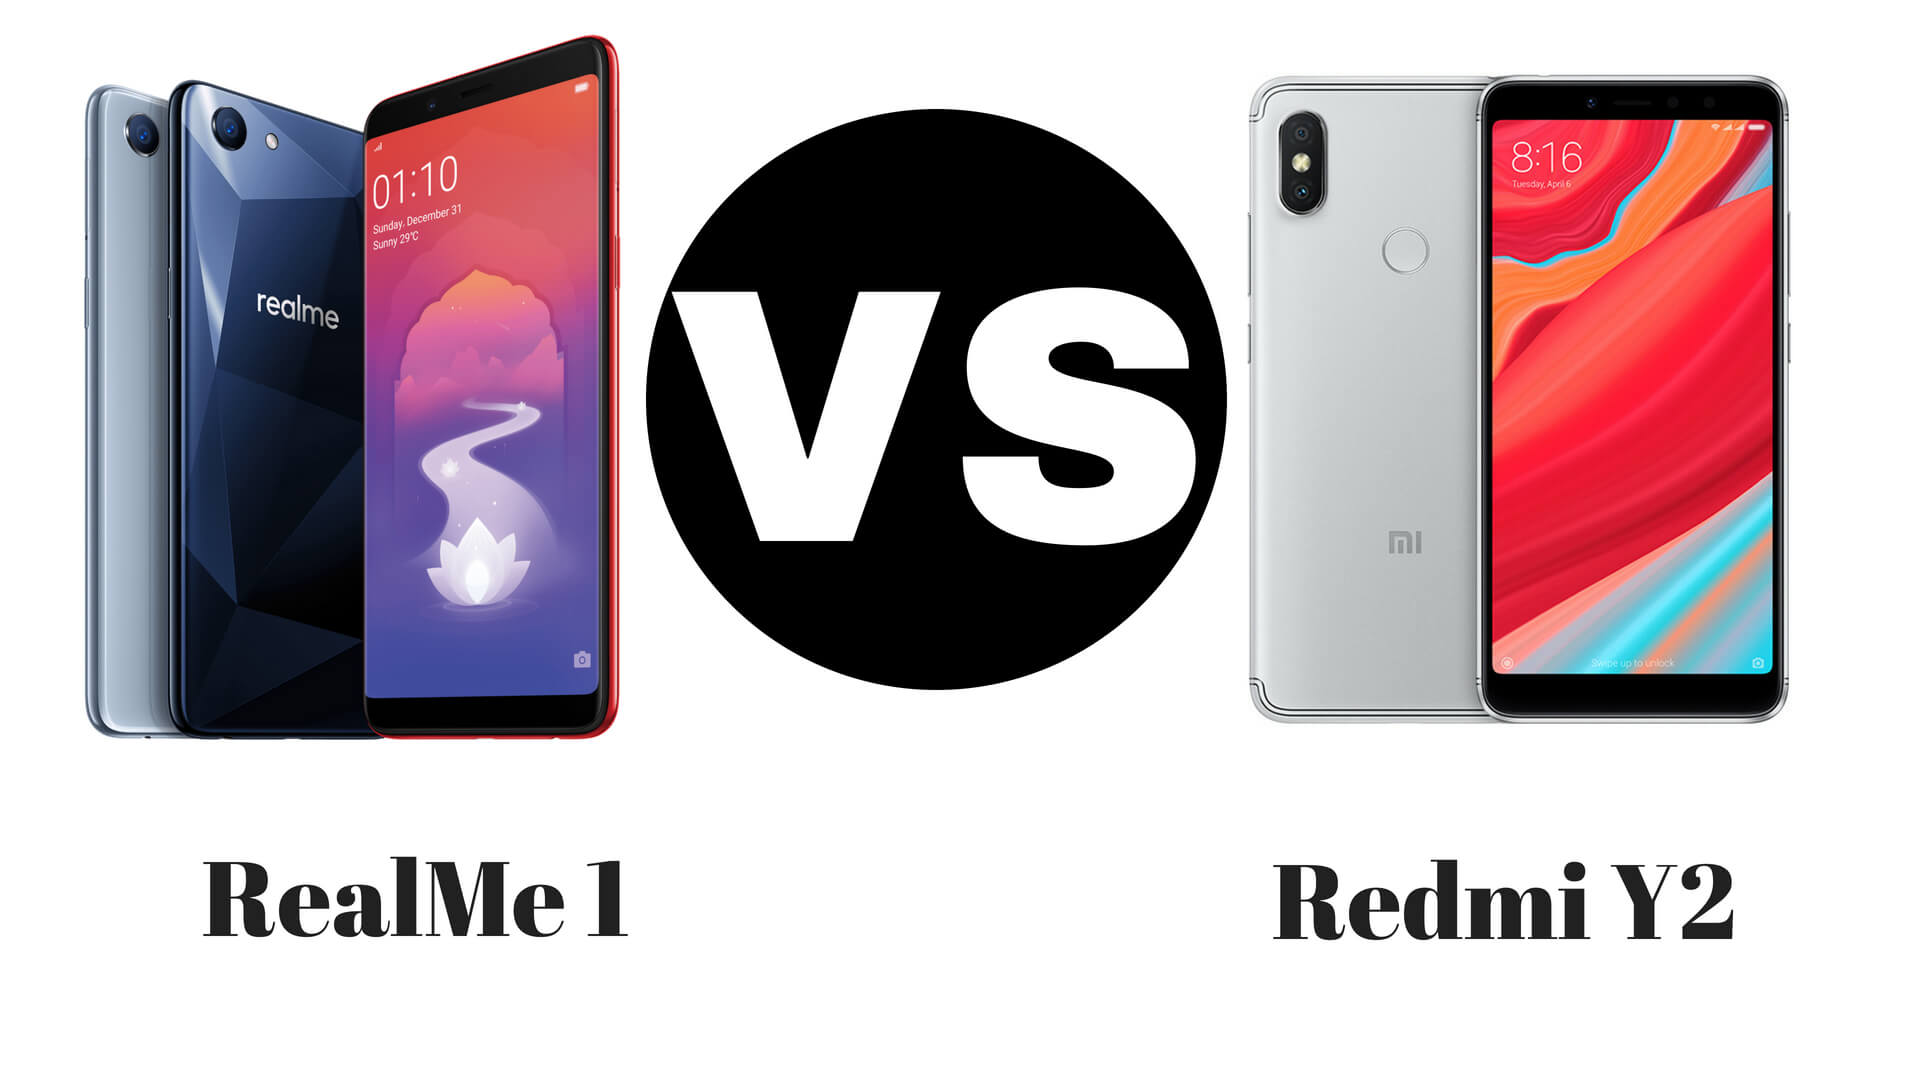 RealMe 1 Vs Redmi Y2 Full Comparison